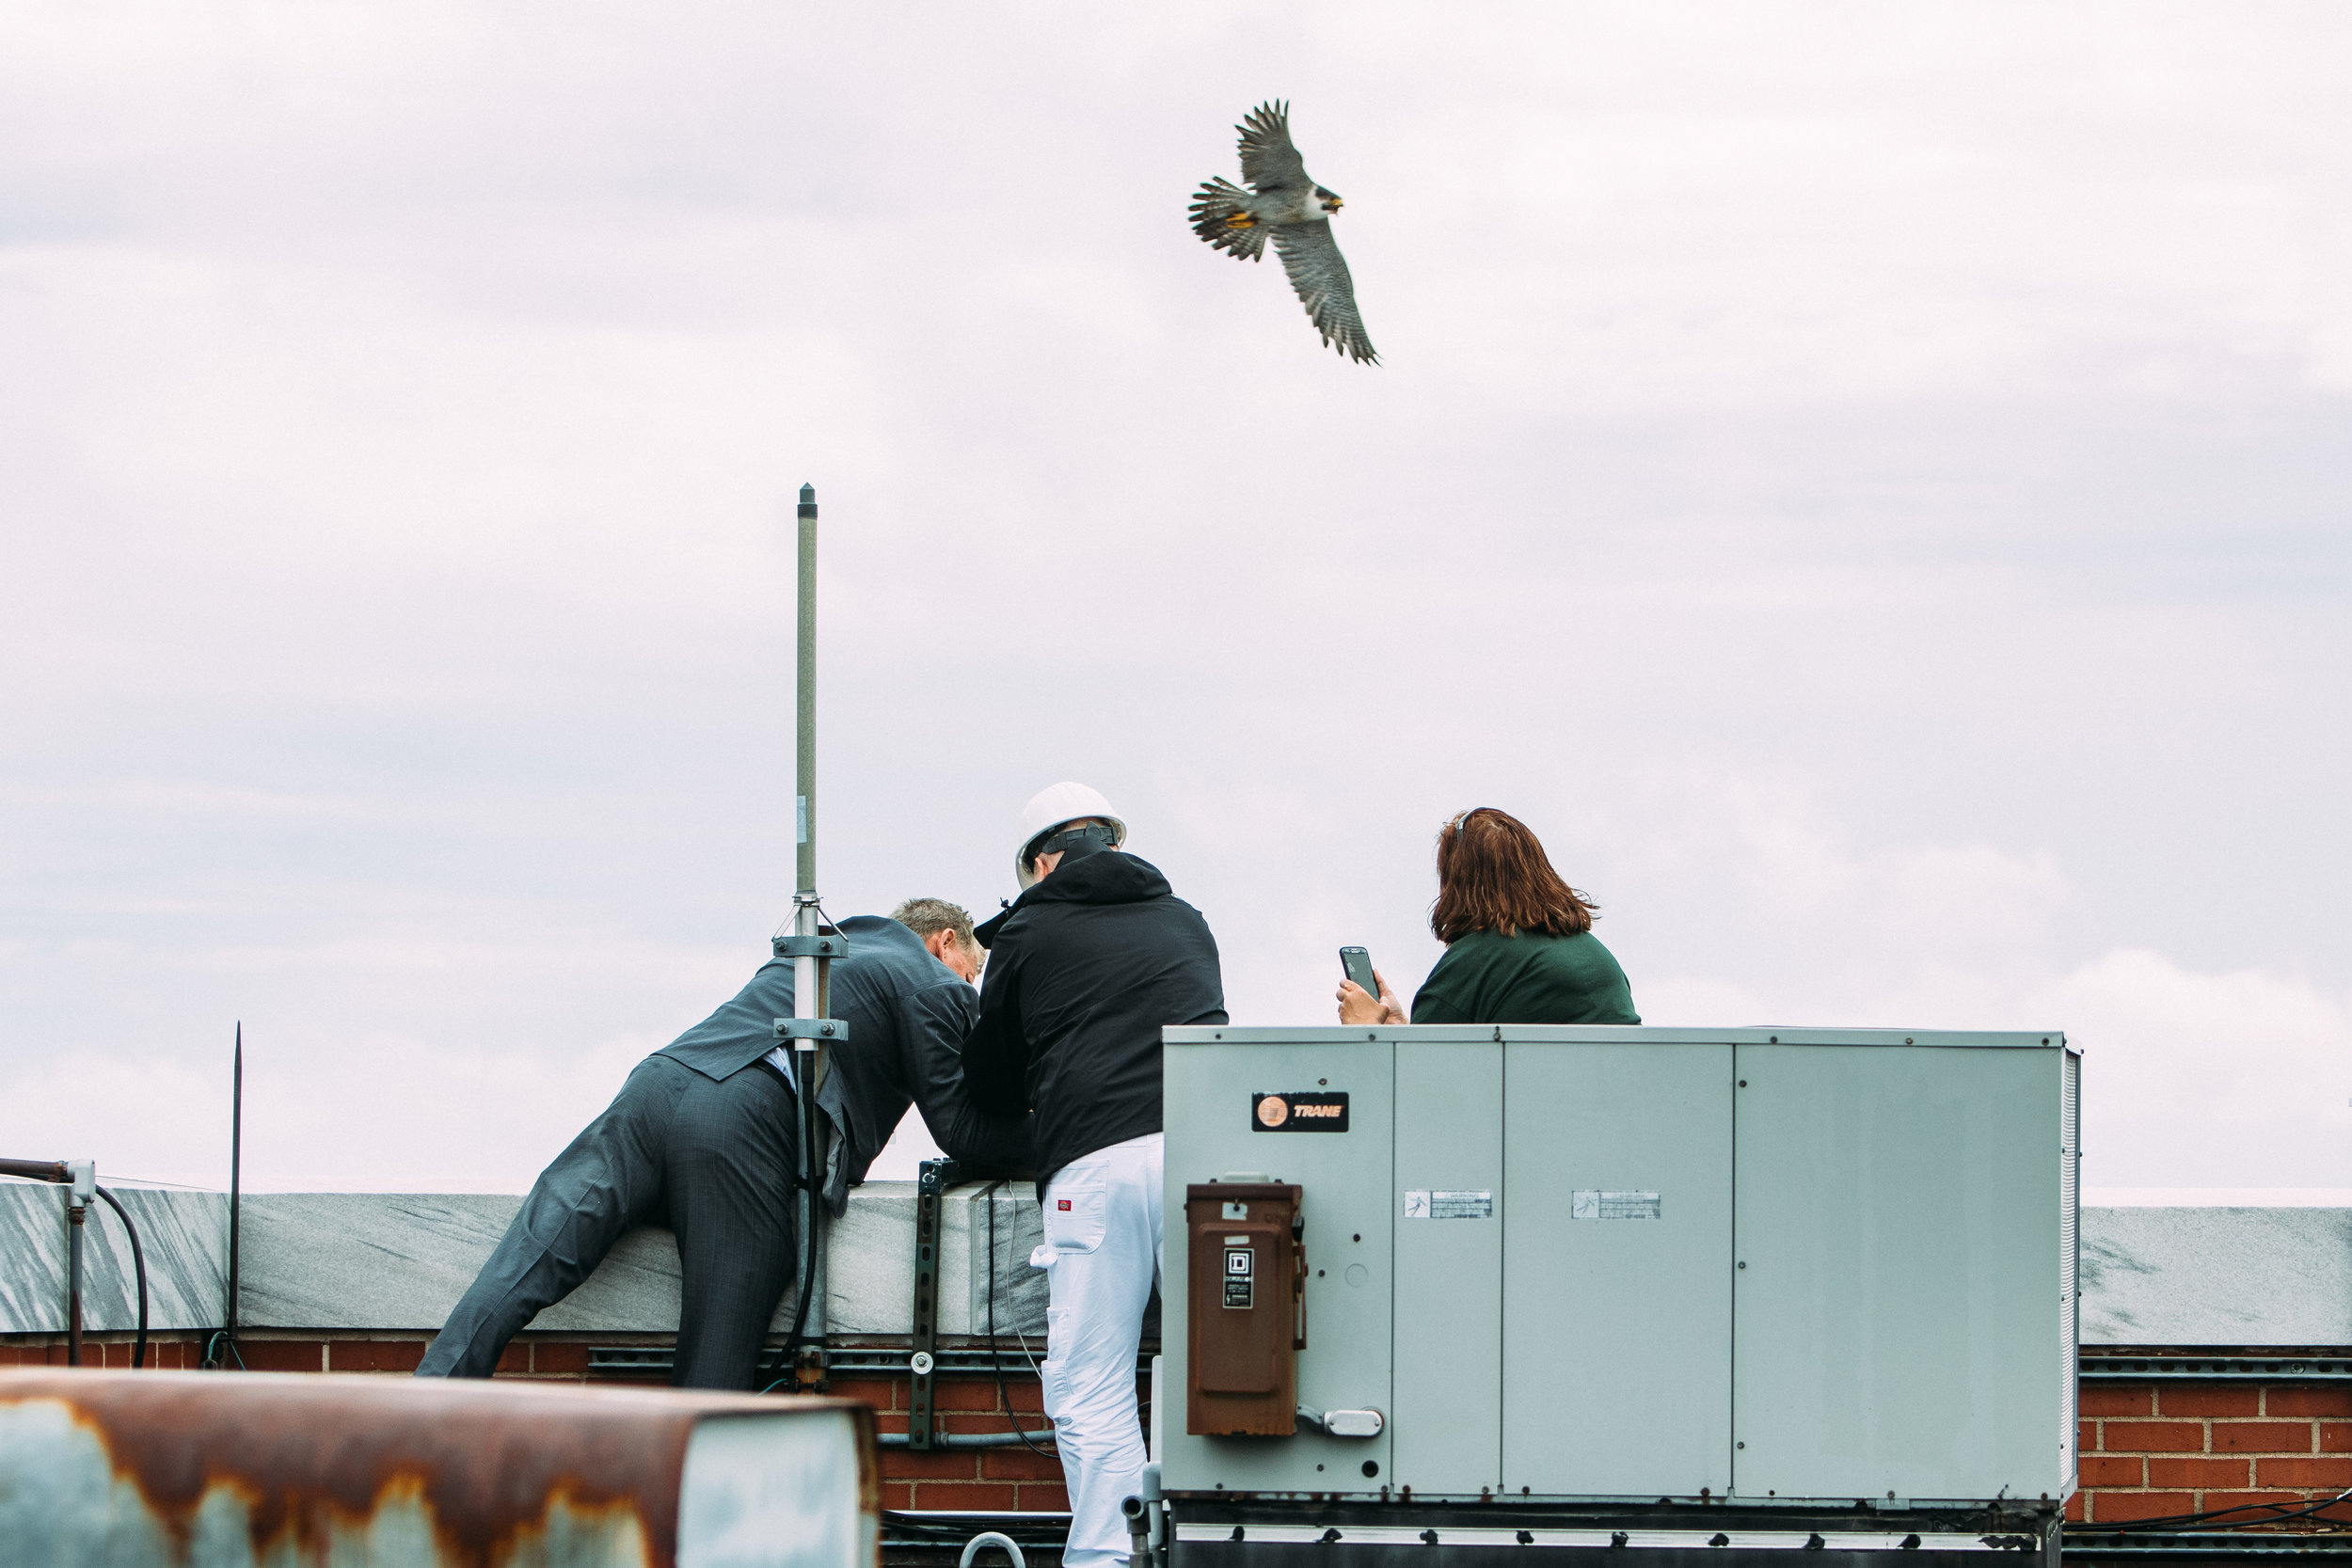 The two resident falcons fought off a total of eight other birds to secure their nest.